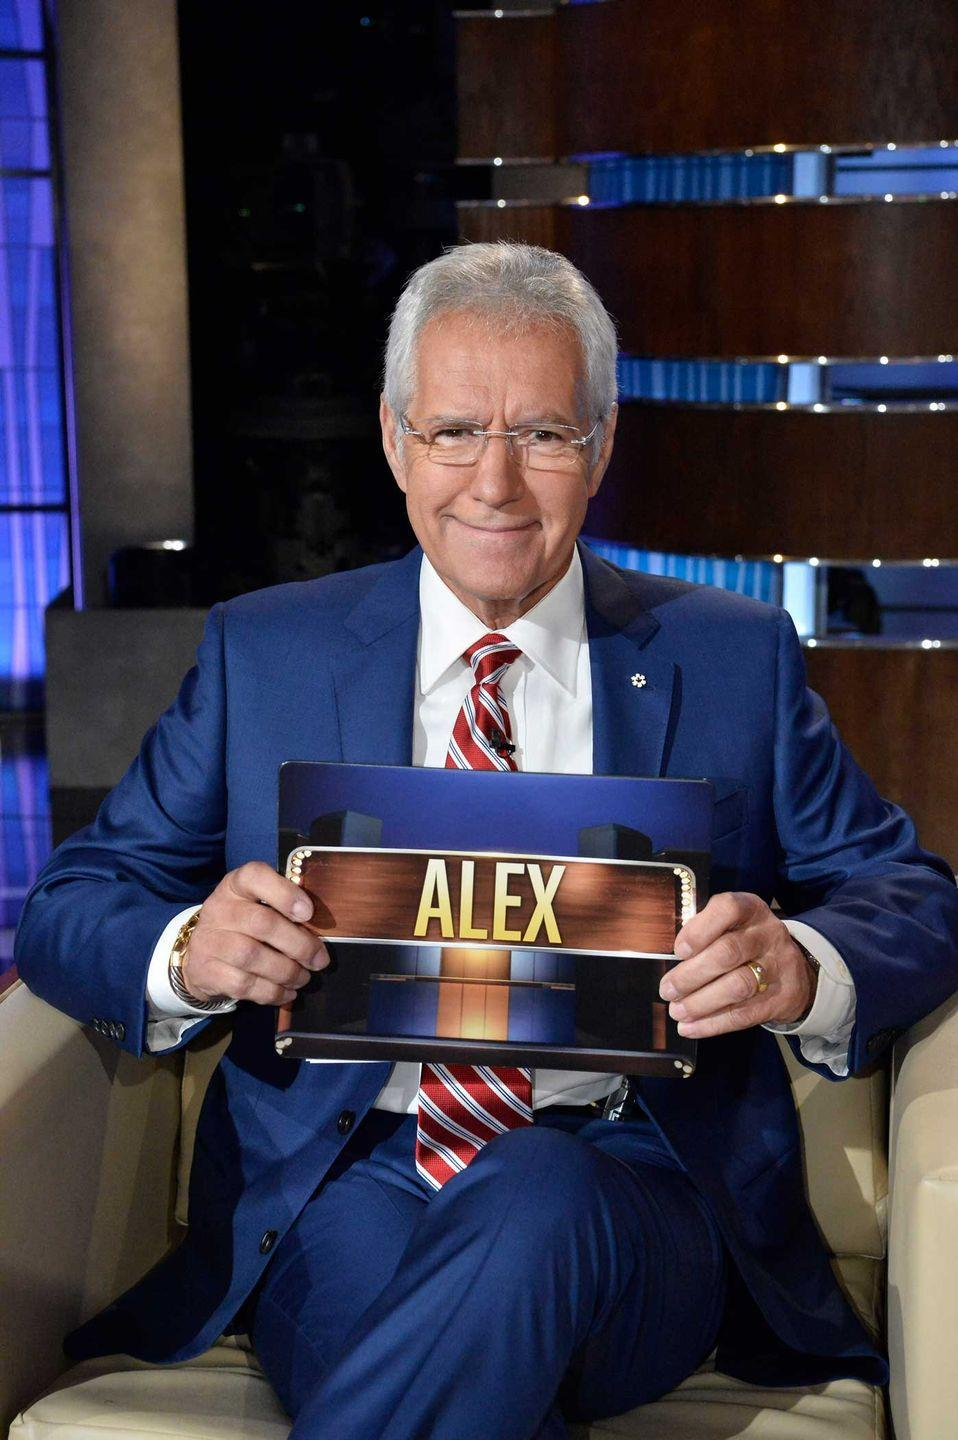 """<p>Alex <a href=""""https://www.etonline.com/alex-trebek-said-he-wanted-to-be-remembered-just-as-a-good-guy-exclusive-156020"""" rel=""""nofollow noopener"""" target=""""_blank"""" data-ylk=""""slk:told ET"""" class=""""link rapid-noclick-resp"""">told ET</a> in May 2019 that he wanted to be remembered as """"Just as a good guy, a nice man. Somebody that you looked at on television on a daily basis and said, 'Hey, you know what, I like him.'""""</p>"""